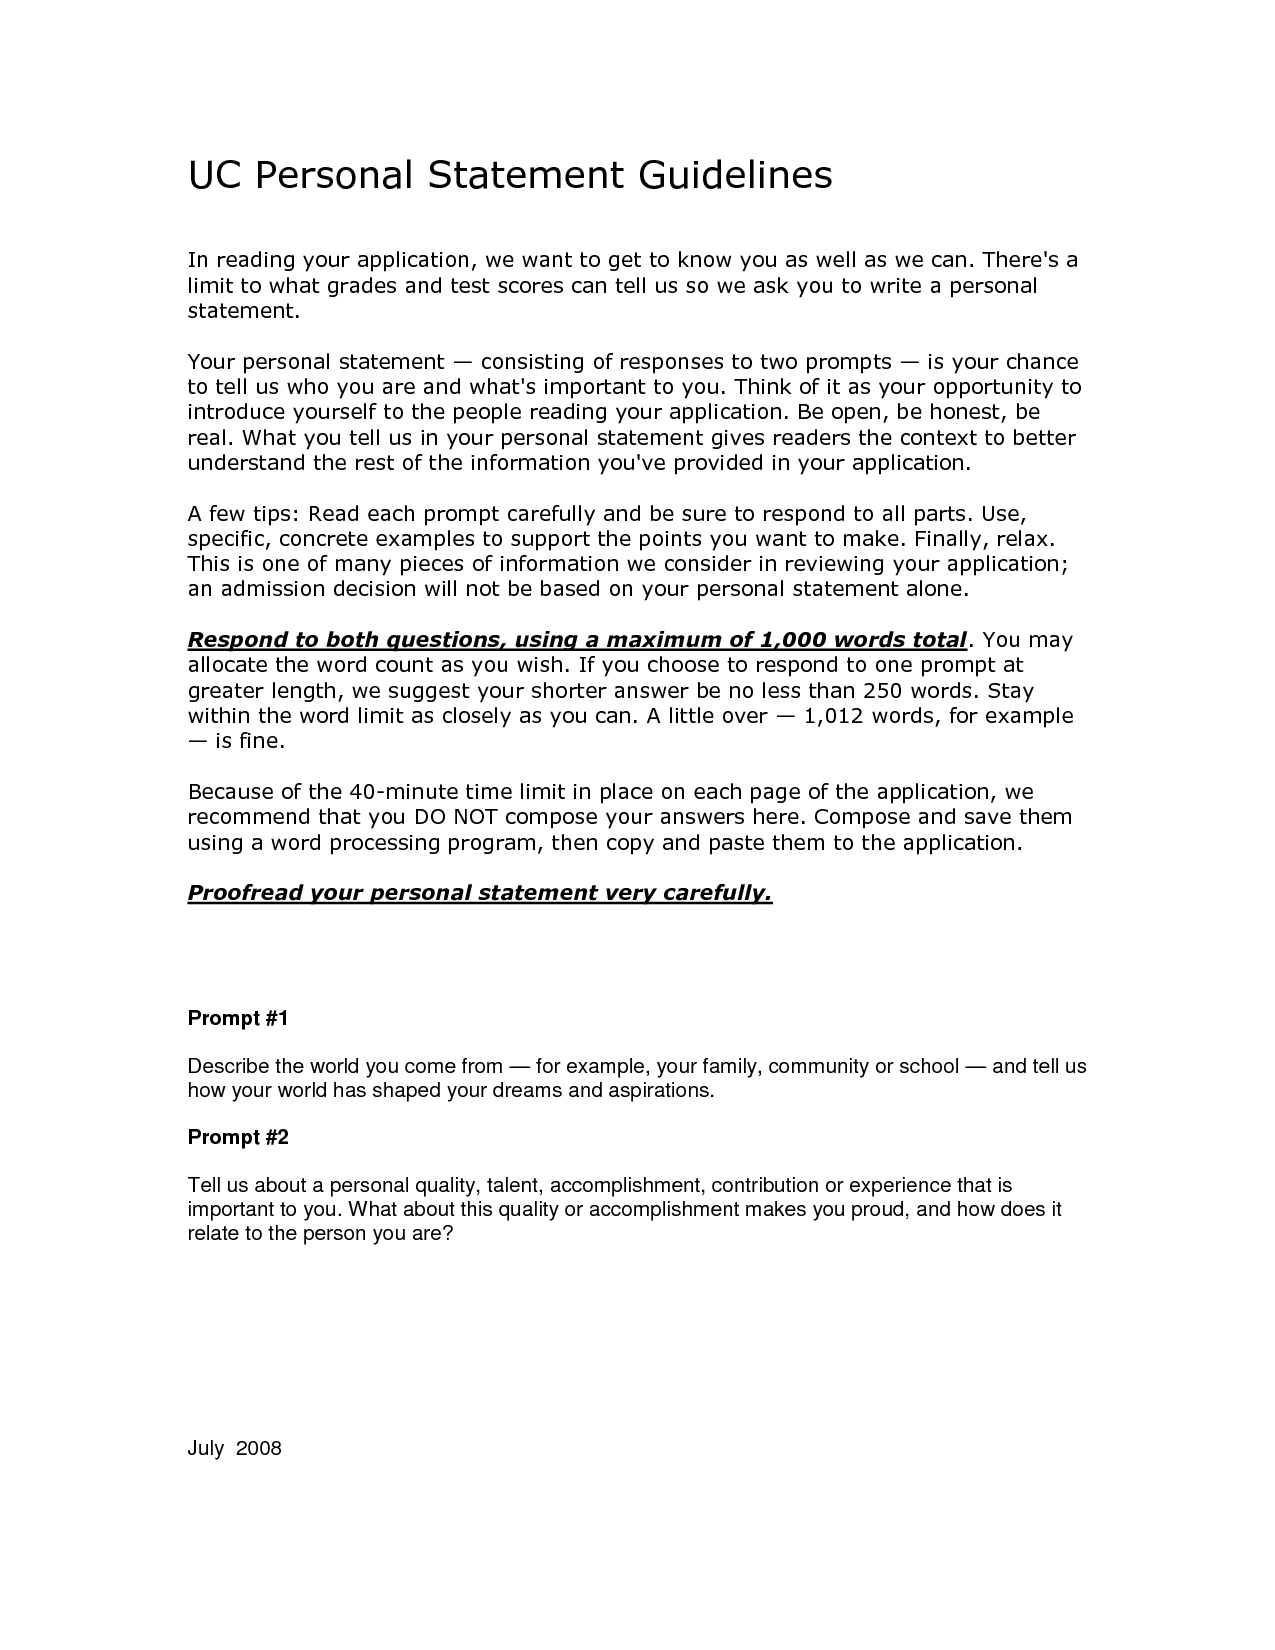 005 Uc Application Essay Examples Personal Statement College Admission Prompts Of Statements Template Cm3 App Prompt Ucf Texas Admissions Example Frightening Essays Tips Full